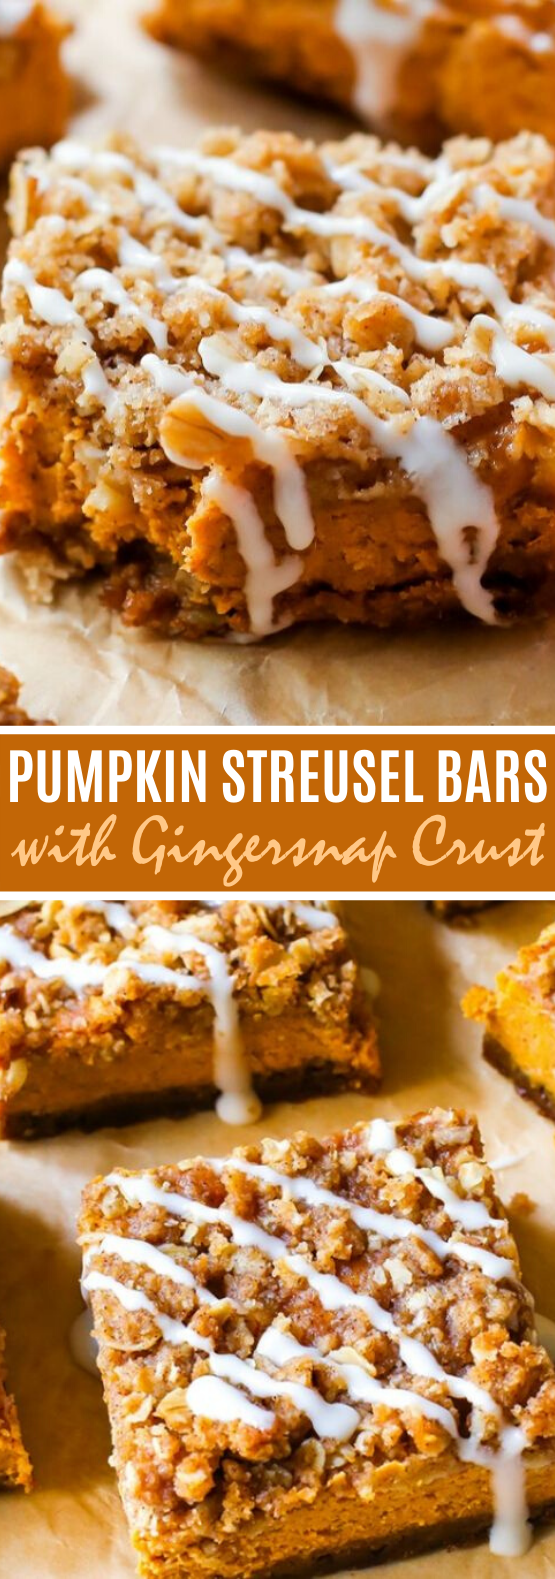 Pumpkin Streusel Bars #desserts #pumpkin #recipes #fall #easy